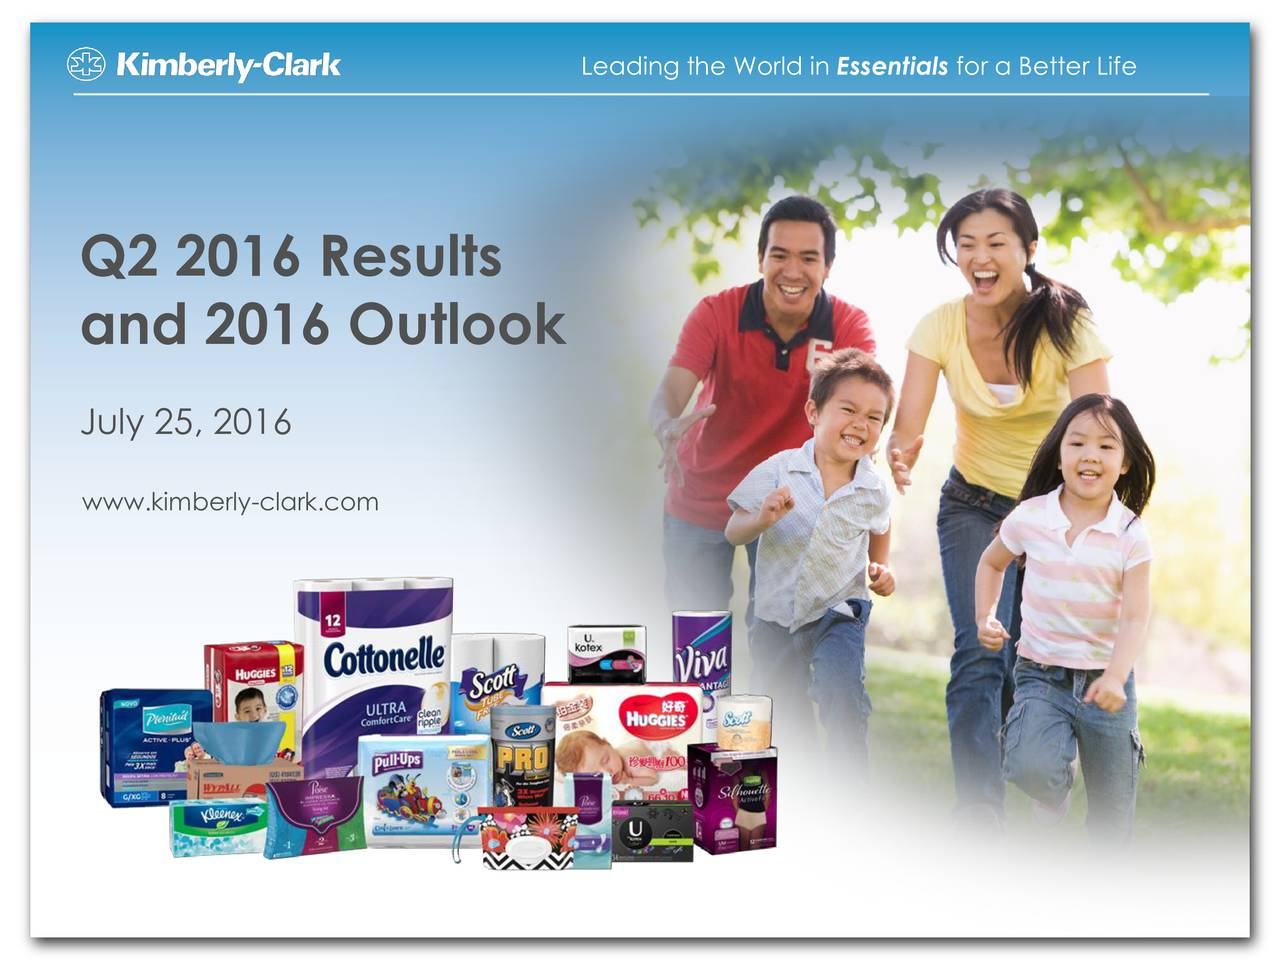 Q2 2016 Results and 2016 Outlook July 25, 2016 www.kimberly-clark.com